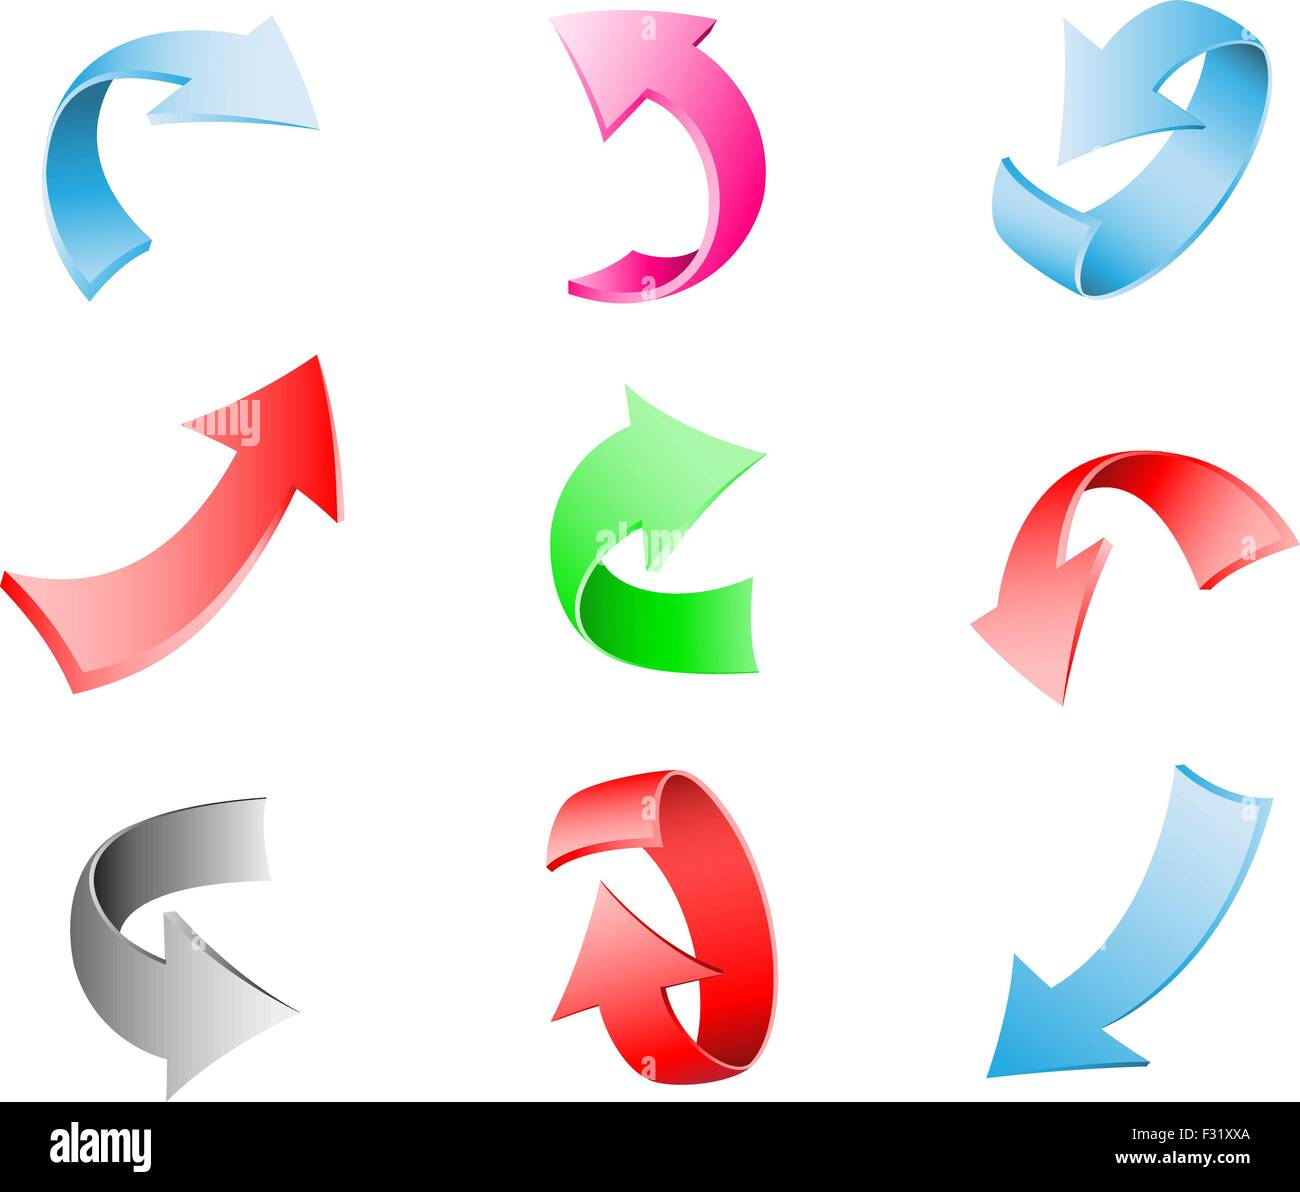 Different multi-colored 3d arrows isolated on the white background - Stock Vector